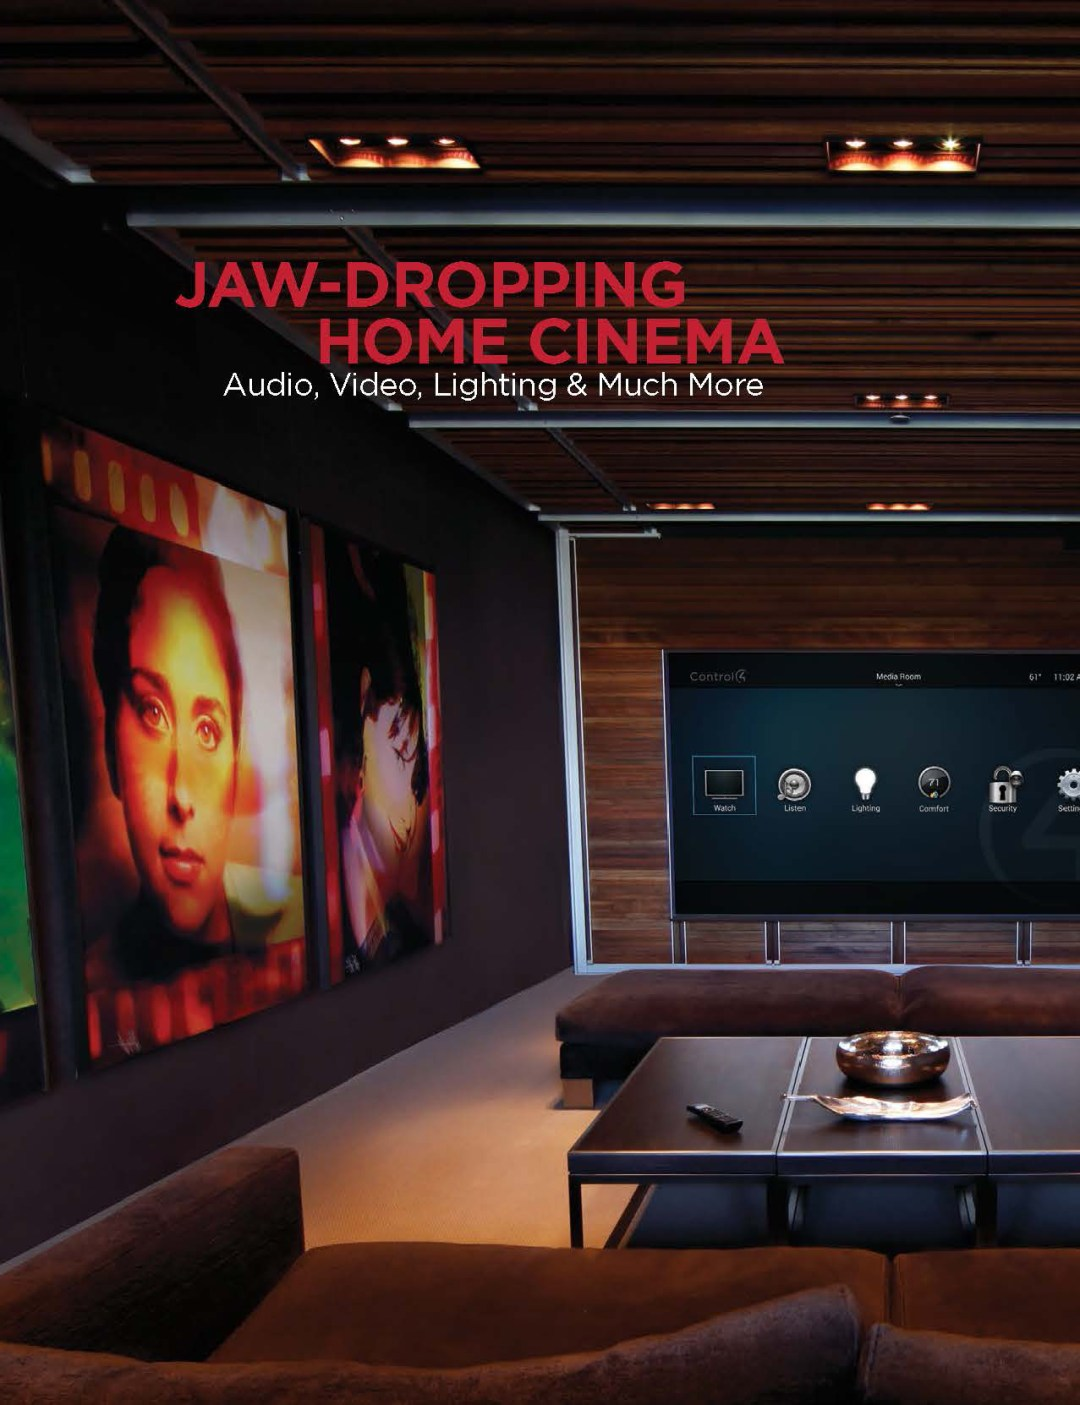 Jaw Dropping home cinema - Audio, Video, Lighting and much more.